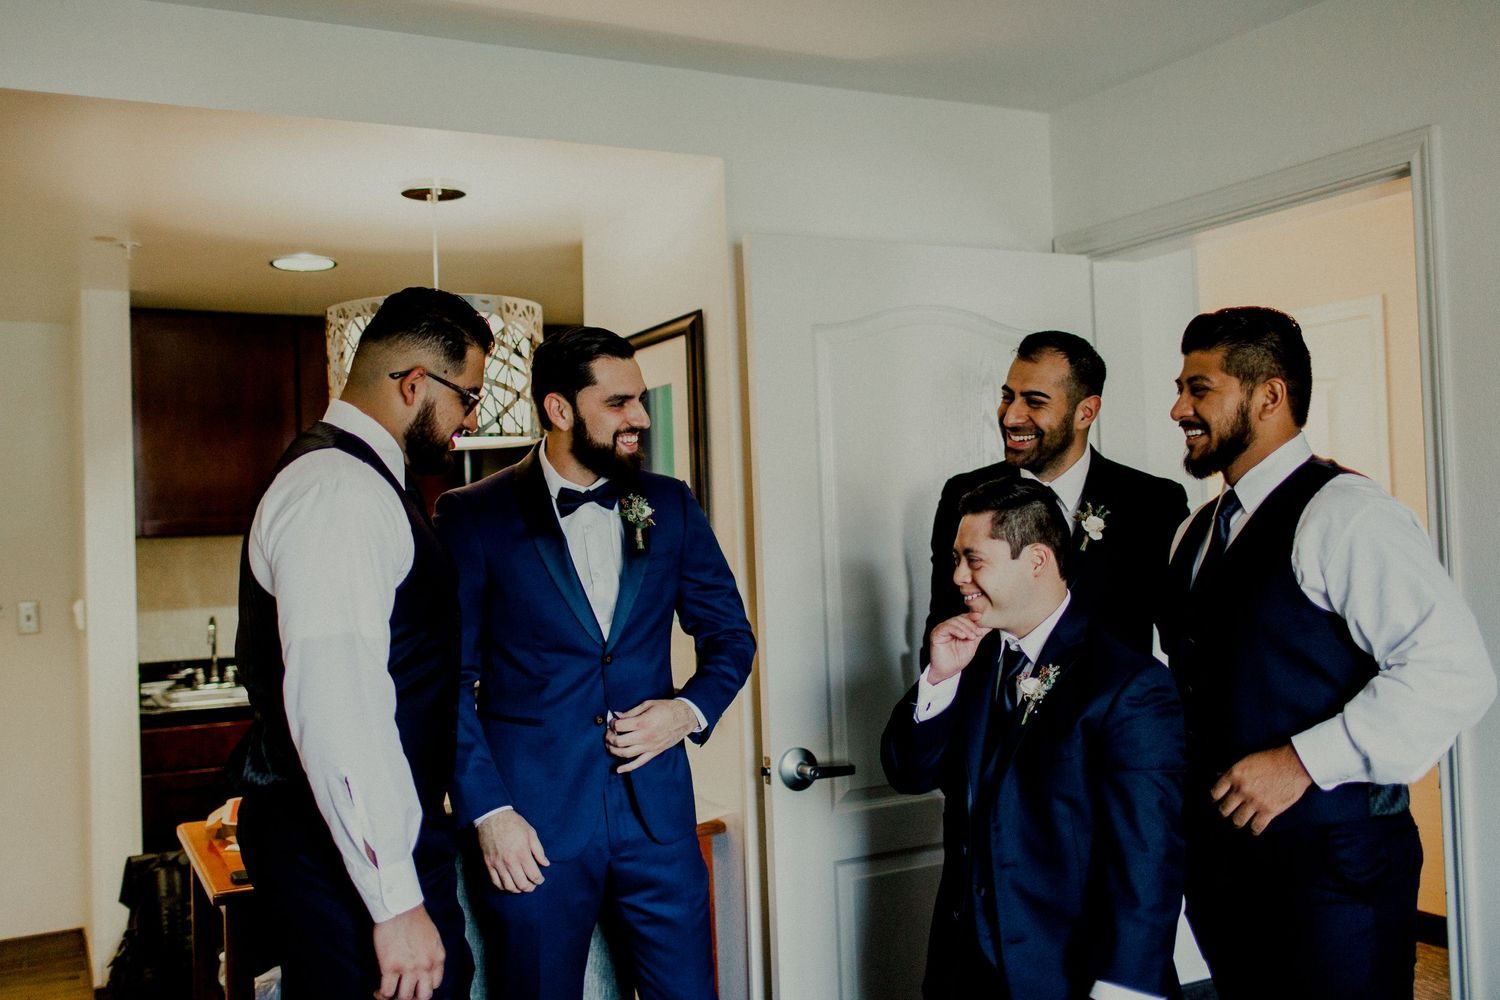 candid of groomsmen talking